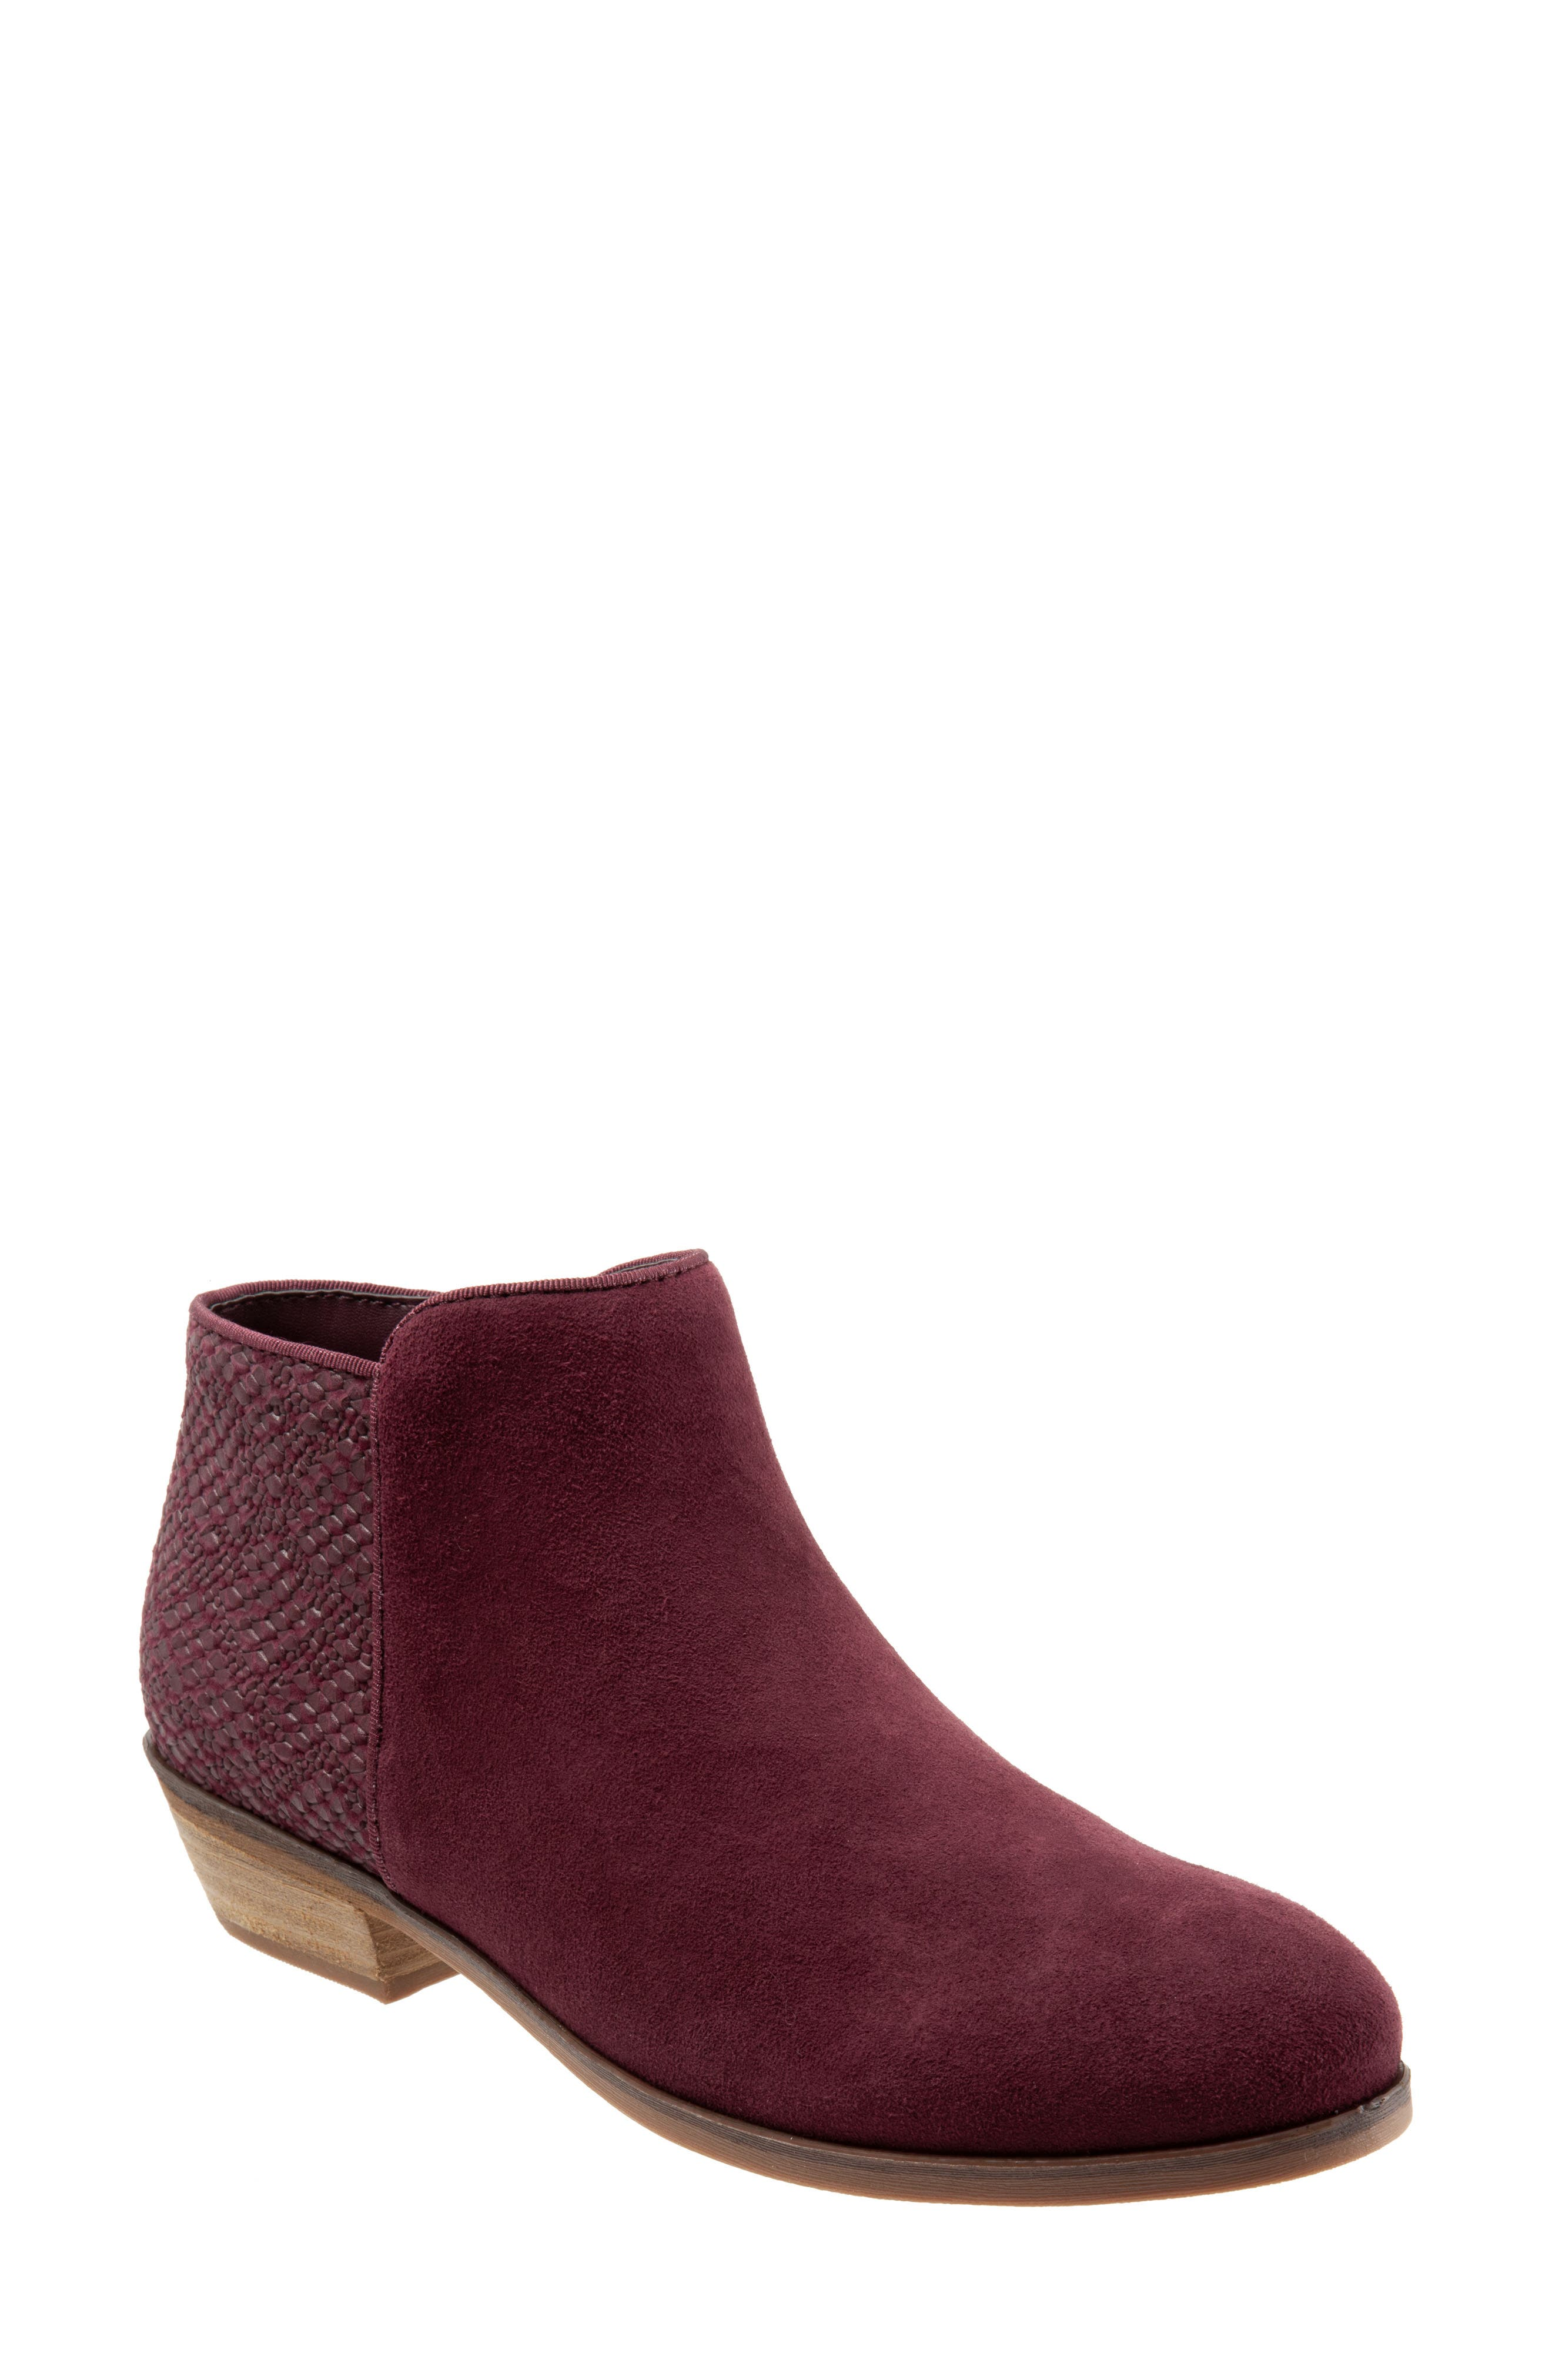 'Rocklin' Bootie,                         Main,                         color, BURGUNDY LEATHER